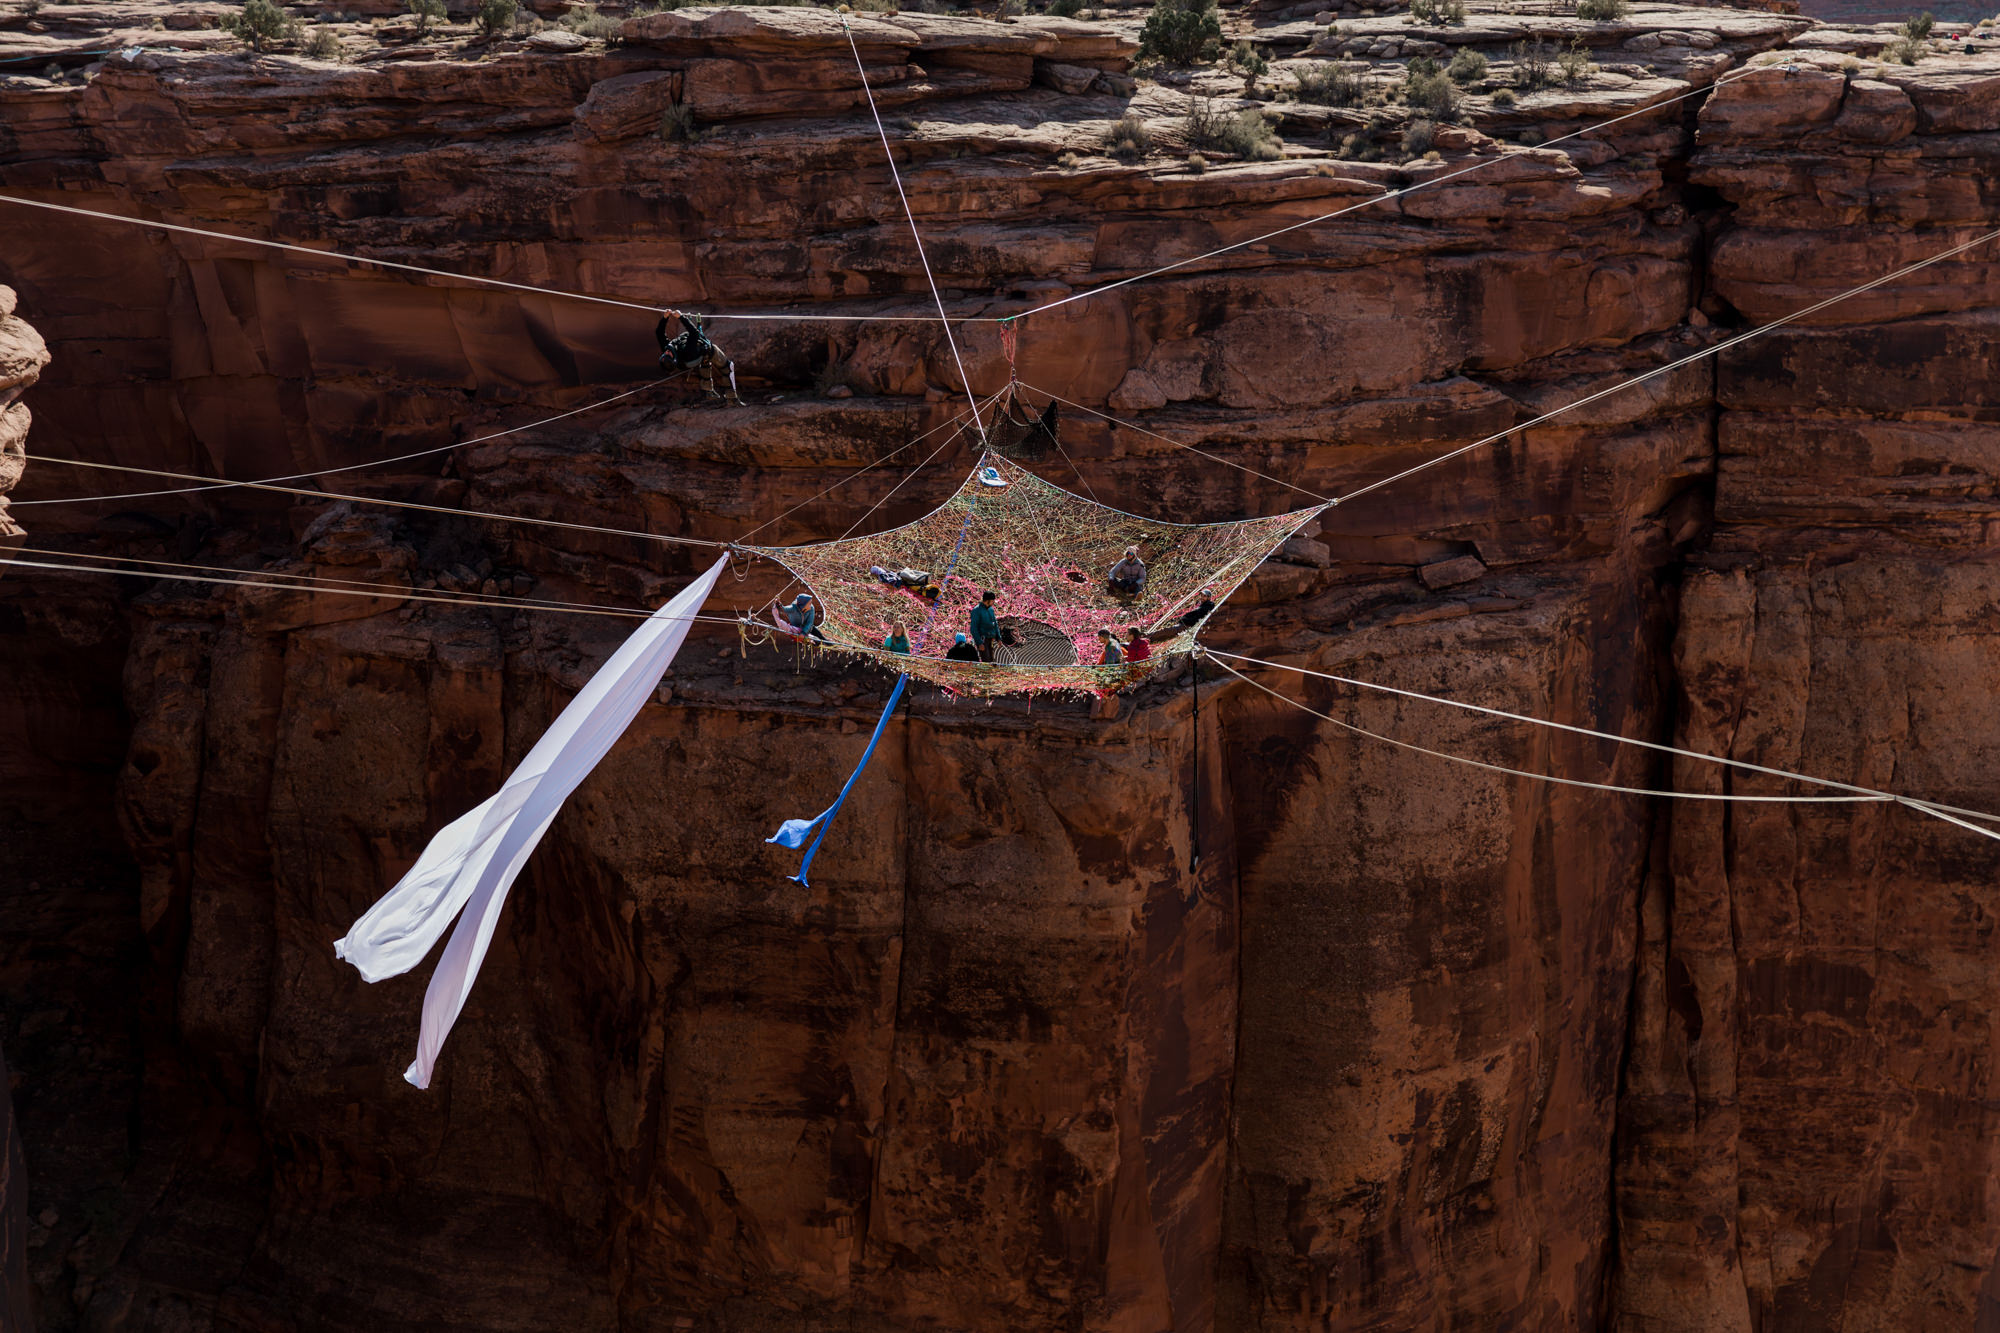 BASE jumping, Highlining, and Rock Climbing in Moab, Utah // extreme sports adventure photography // GGBY + Turkey Boogie 2016 // www.abbihearne.com